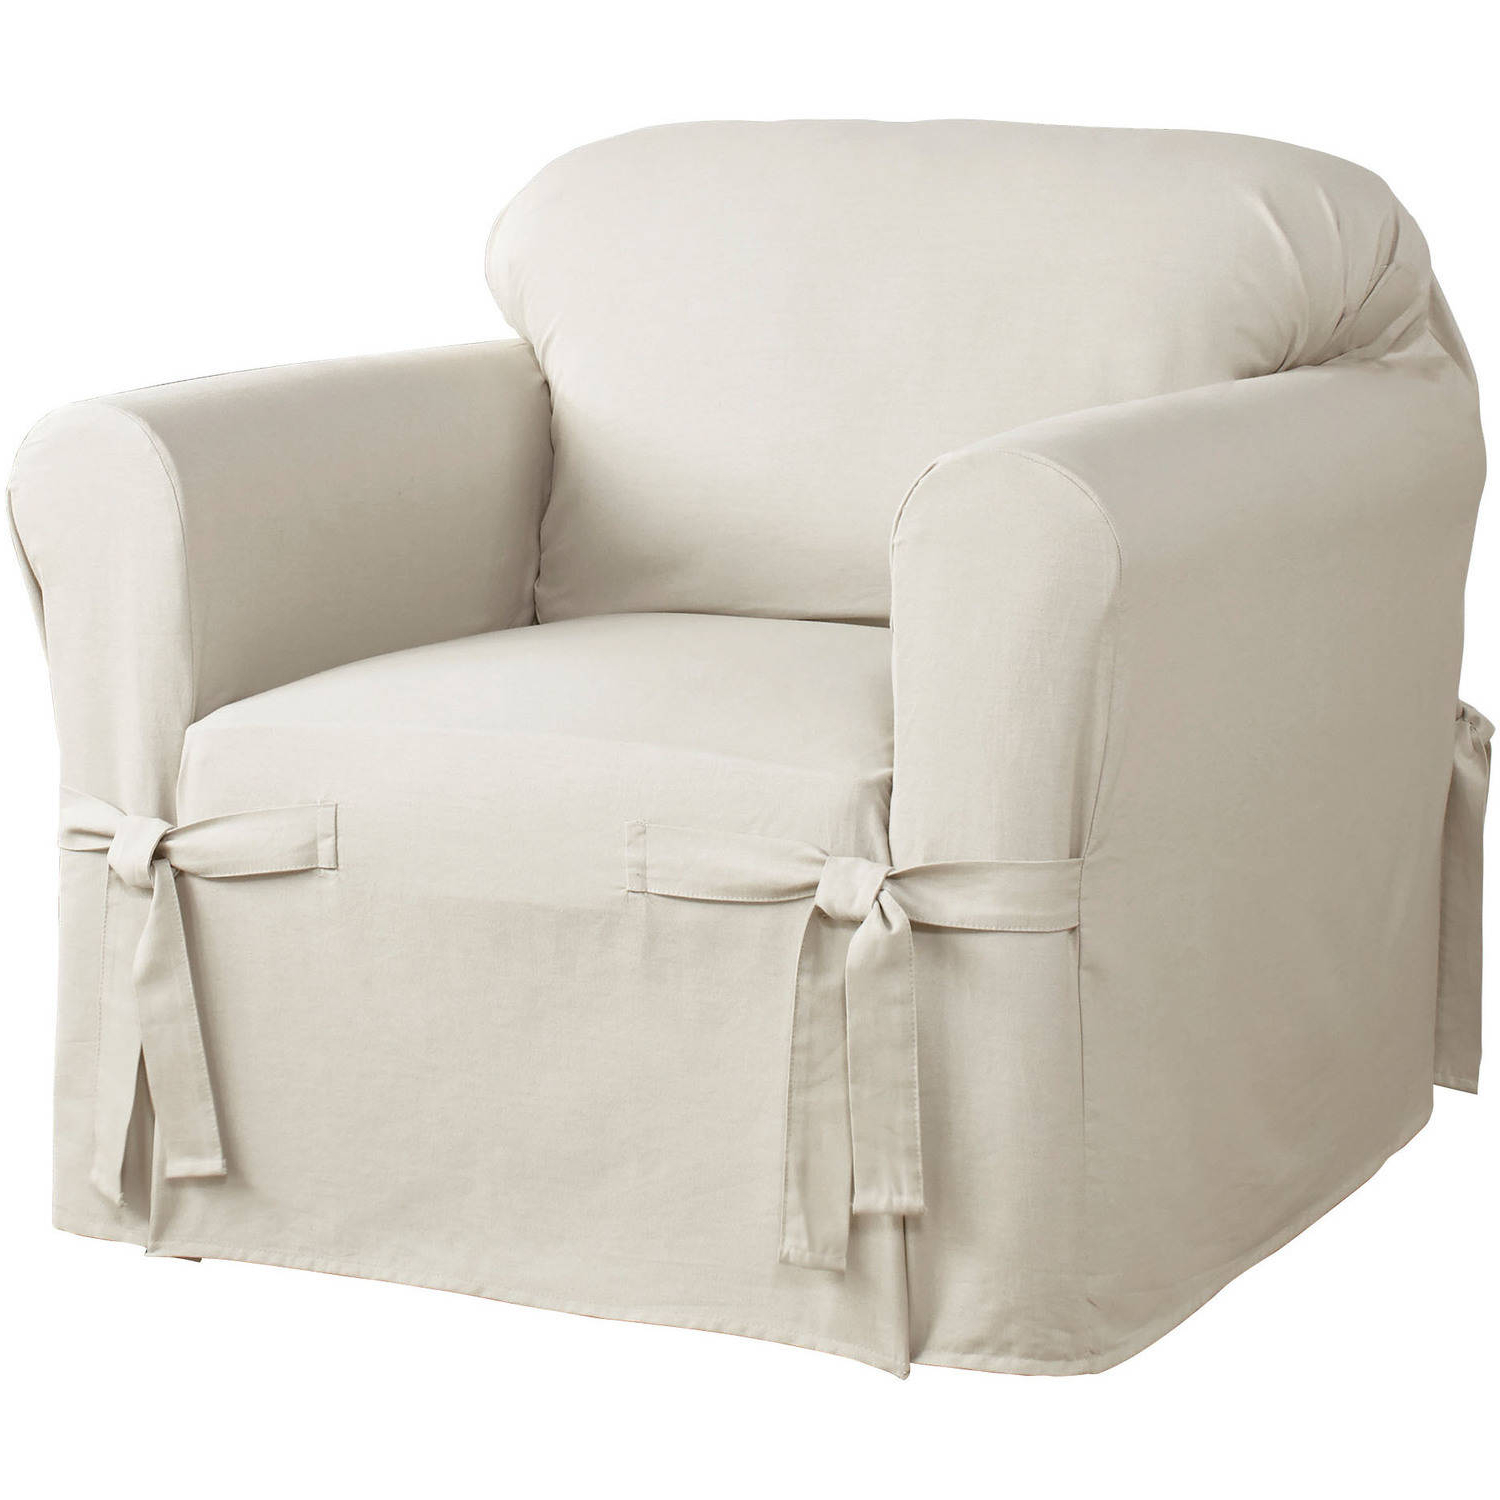 Slipcovers For Sofas And Chairs Within Widely Used Serta Relaxed Fit Cotton Duck Furniture Slipcover, Chair 1 Piece Box (Gallery 12 of 20)